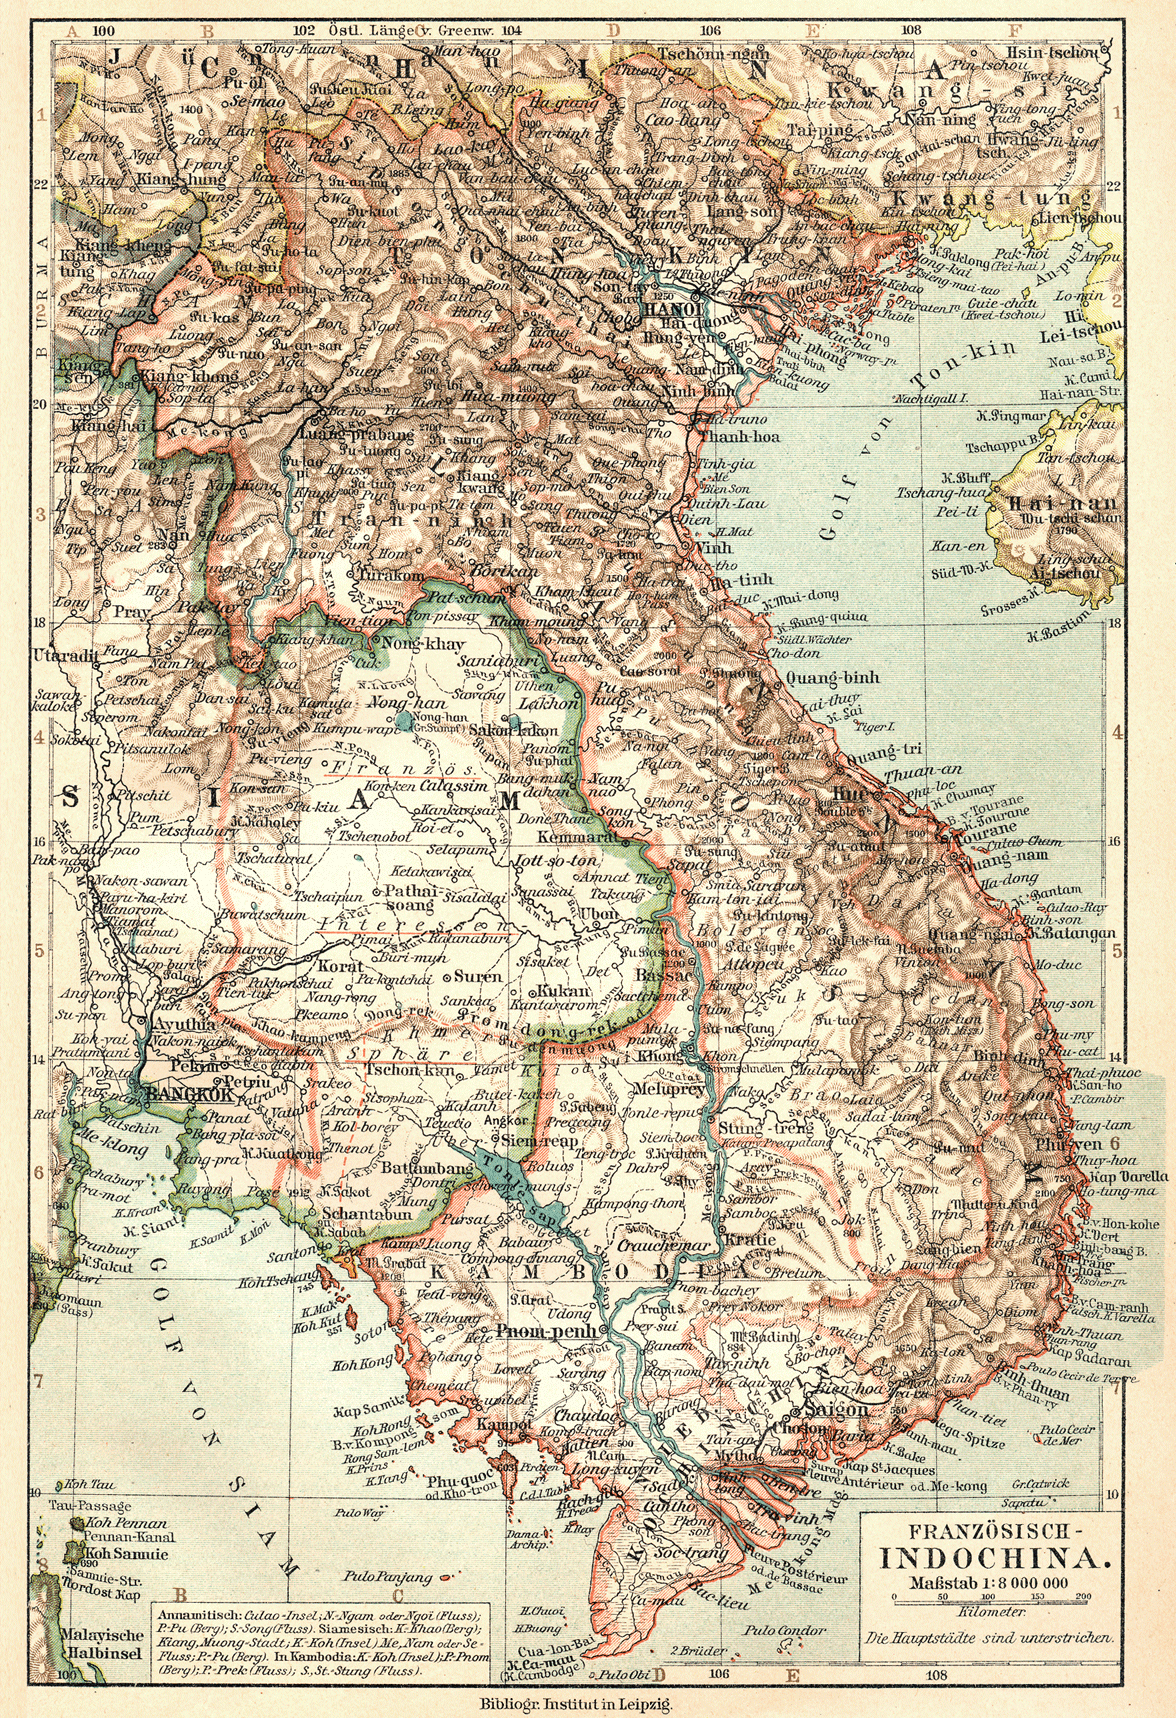 http://upload.wikimedia.org/wikipedia/commons/3/38/081_franzosisch-indochina_(1905).png